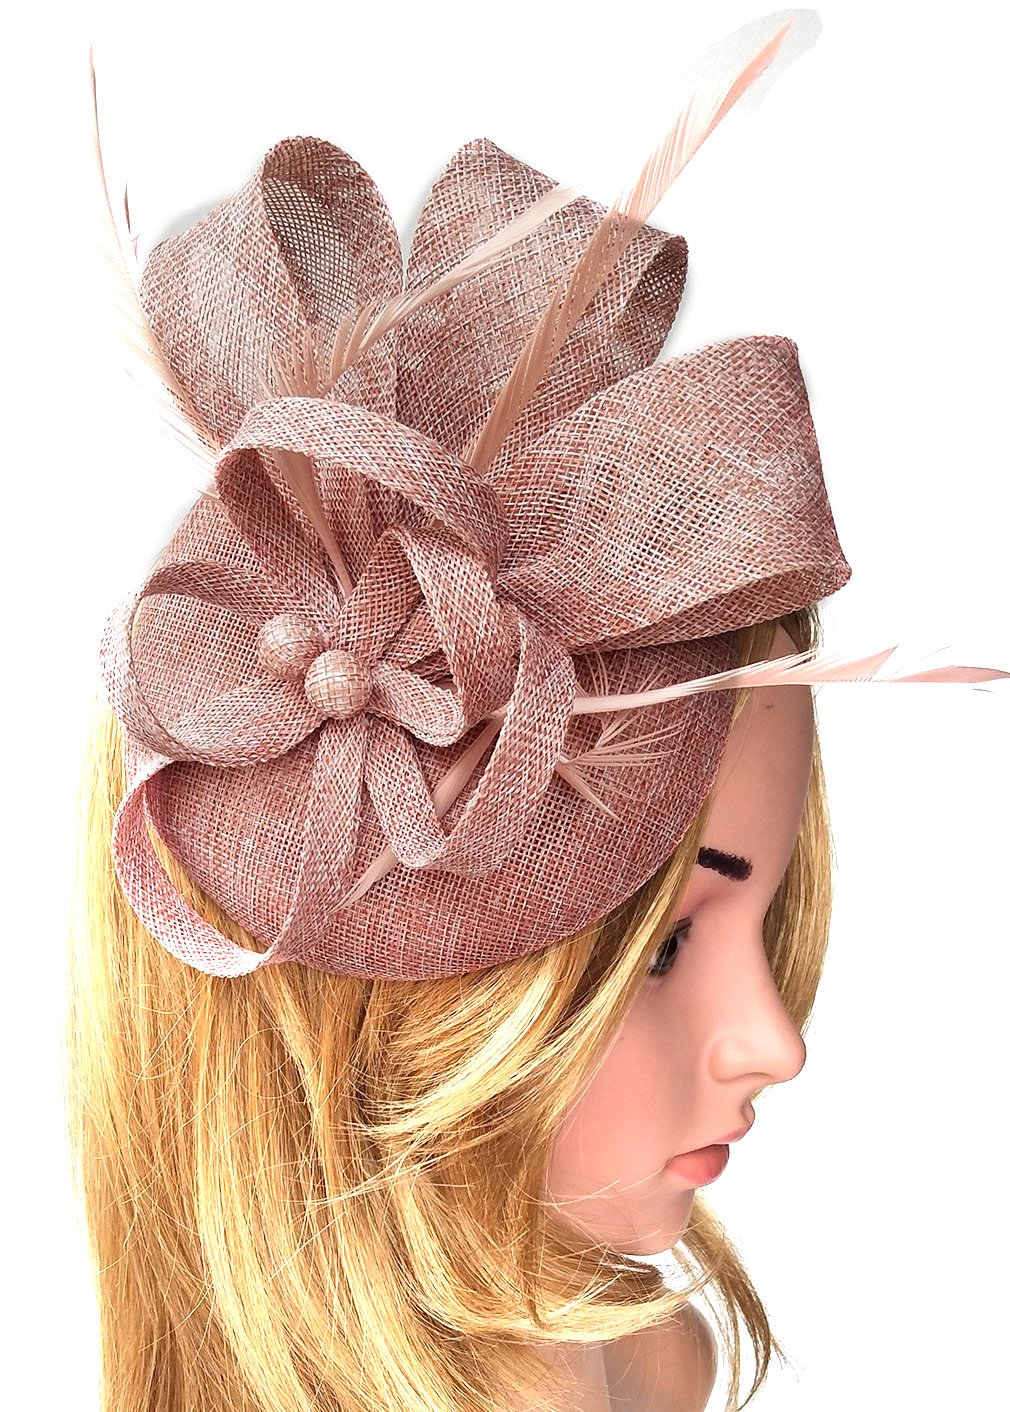 Biruil Women's Fascinator Hat Imitation Sinamay Feather Tea Party Pillbox Flower Derby (Champagne)